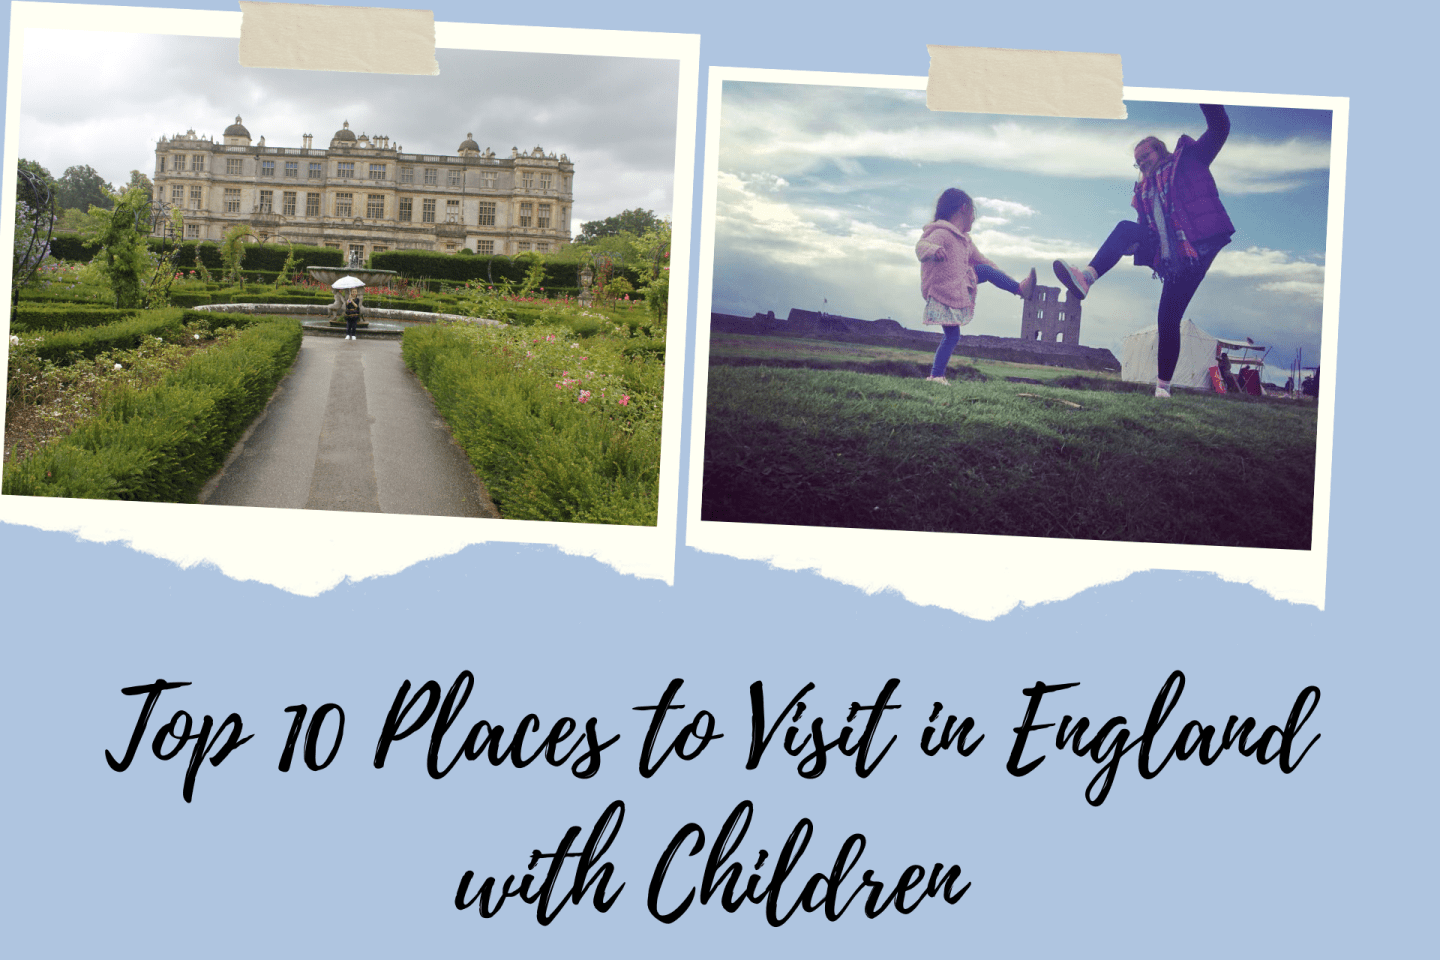 Top 10 Places to Visit in England with Children